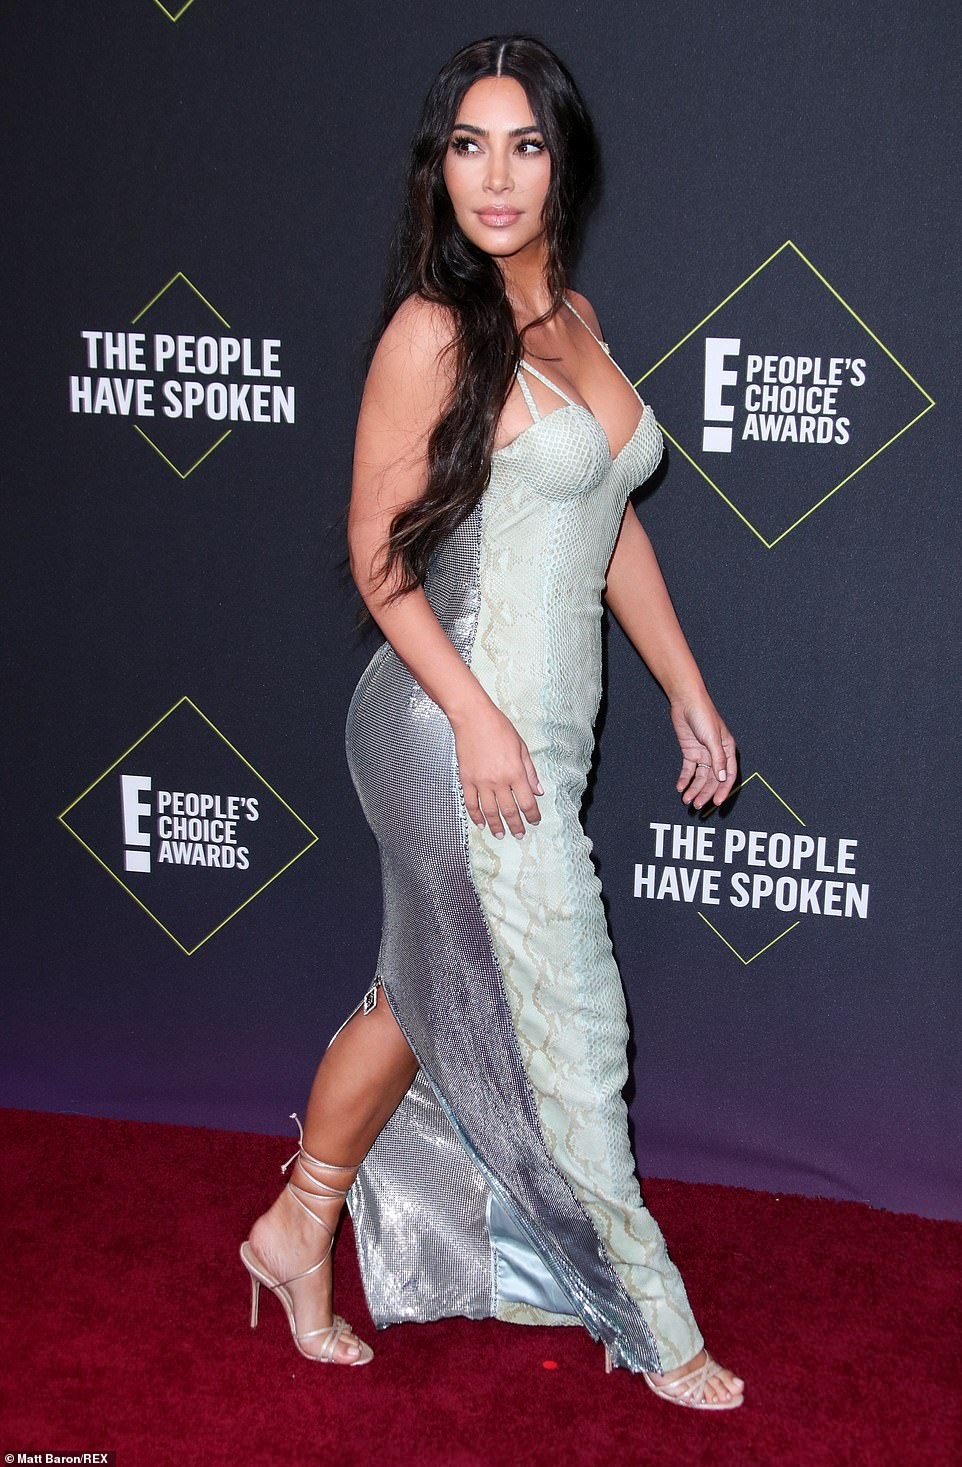 Kim Kardashian West embraces her curves in slinky snakeskin dress